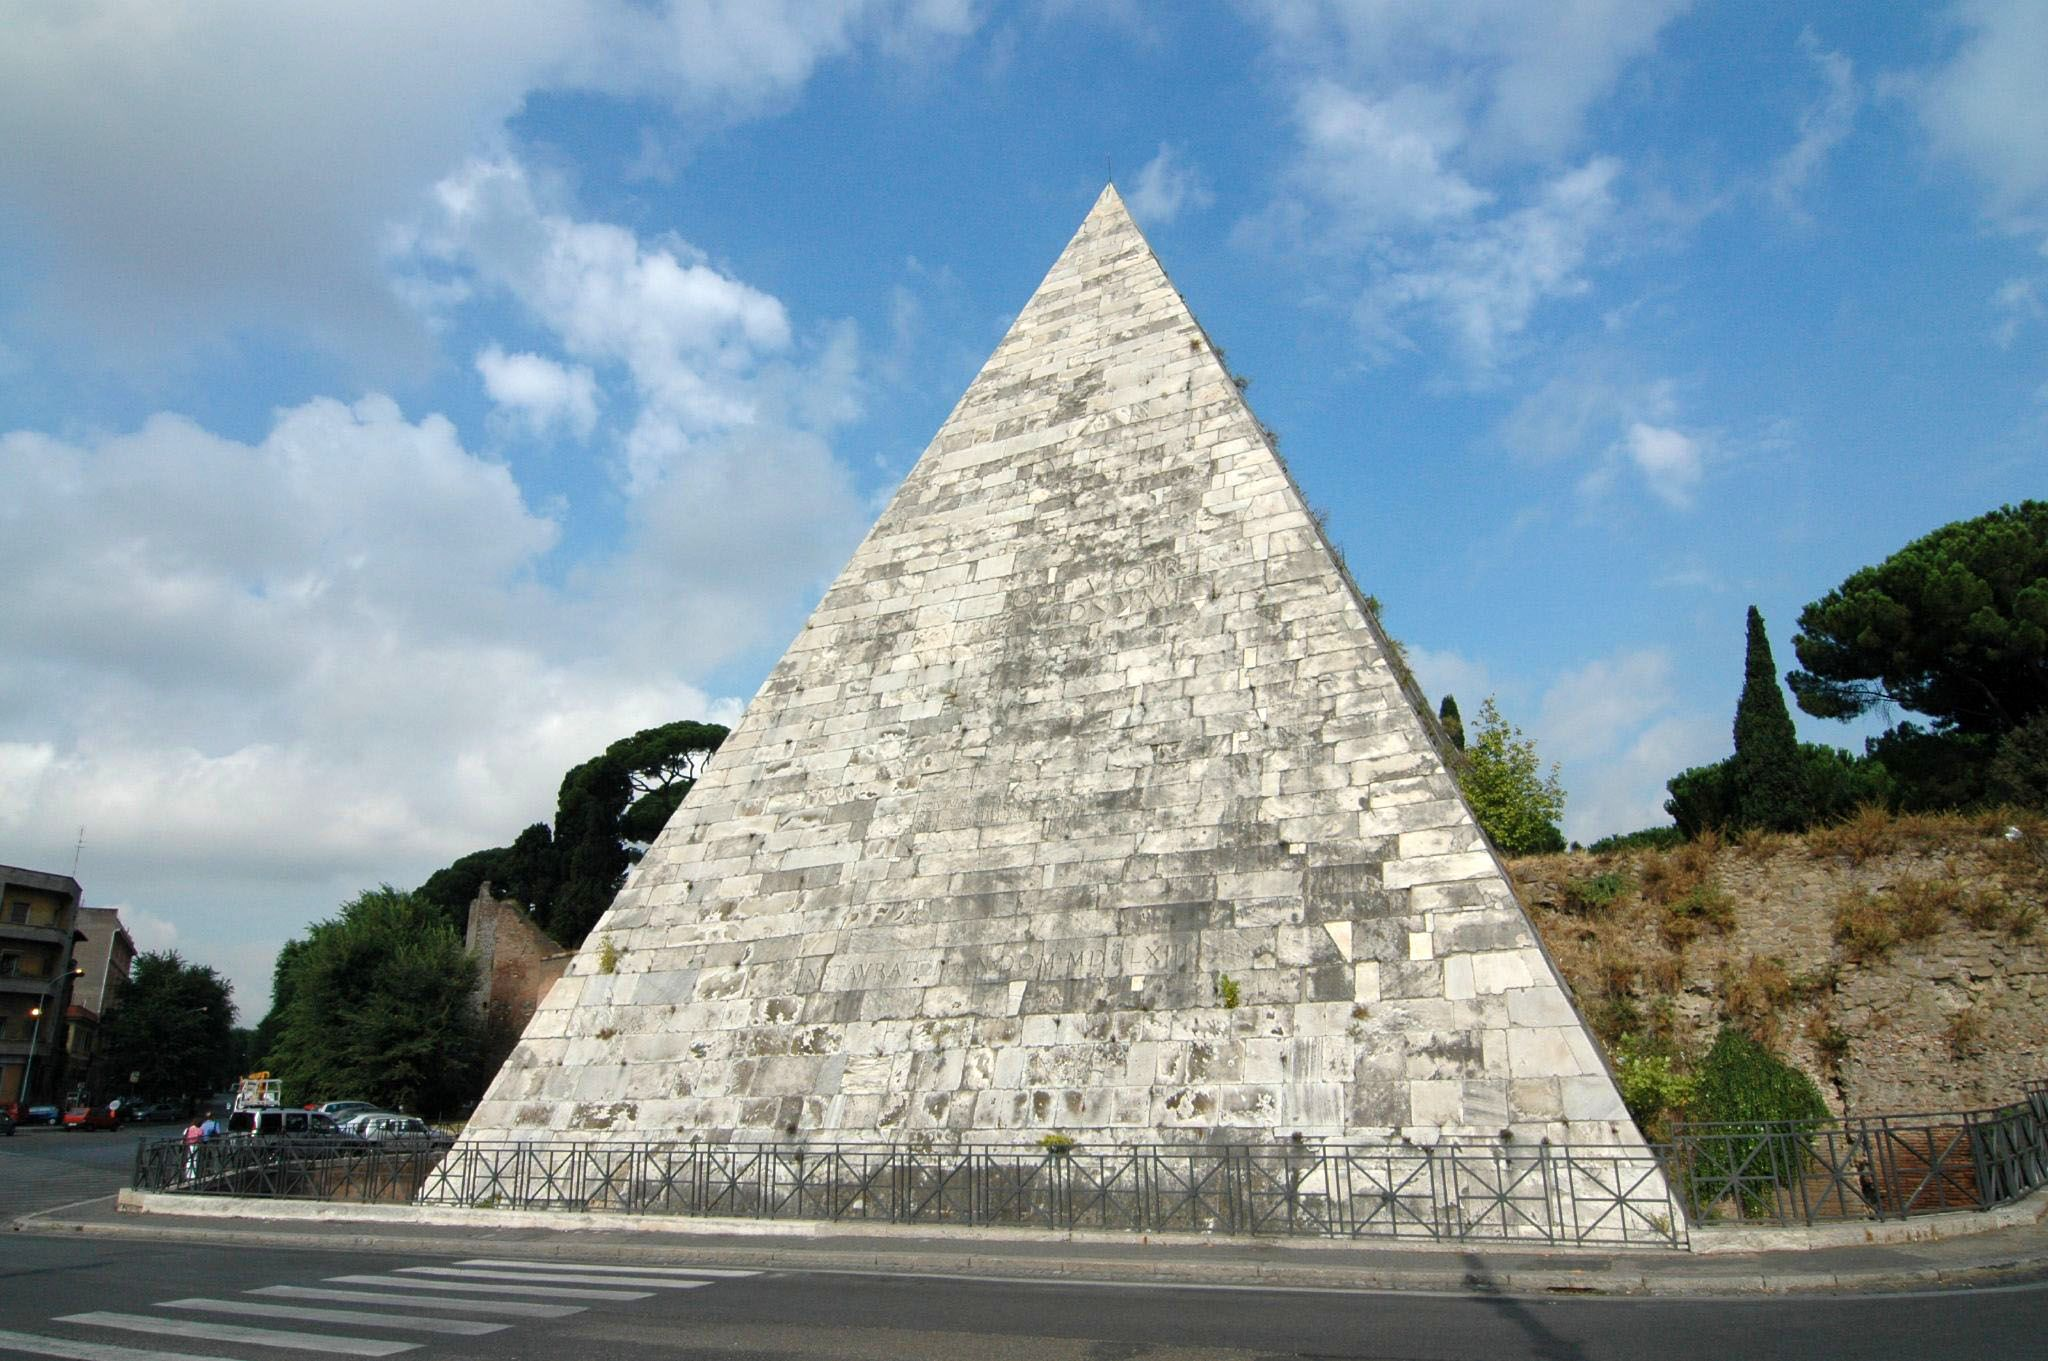 Pyramid of Cestius. One of the most well preserved structures in ancient Rome. Built 18BC. Italy